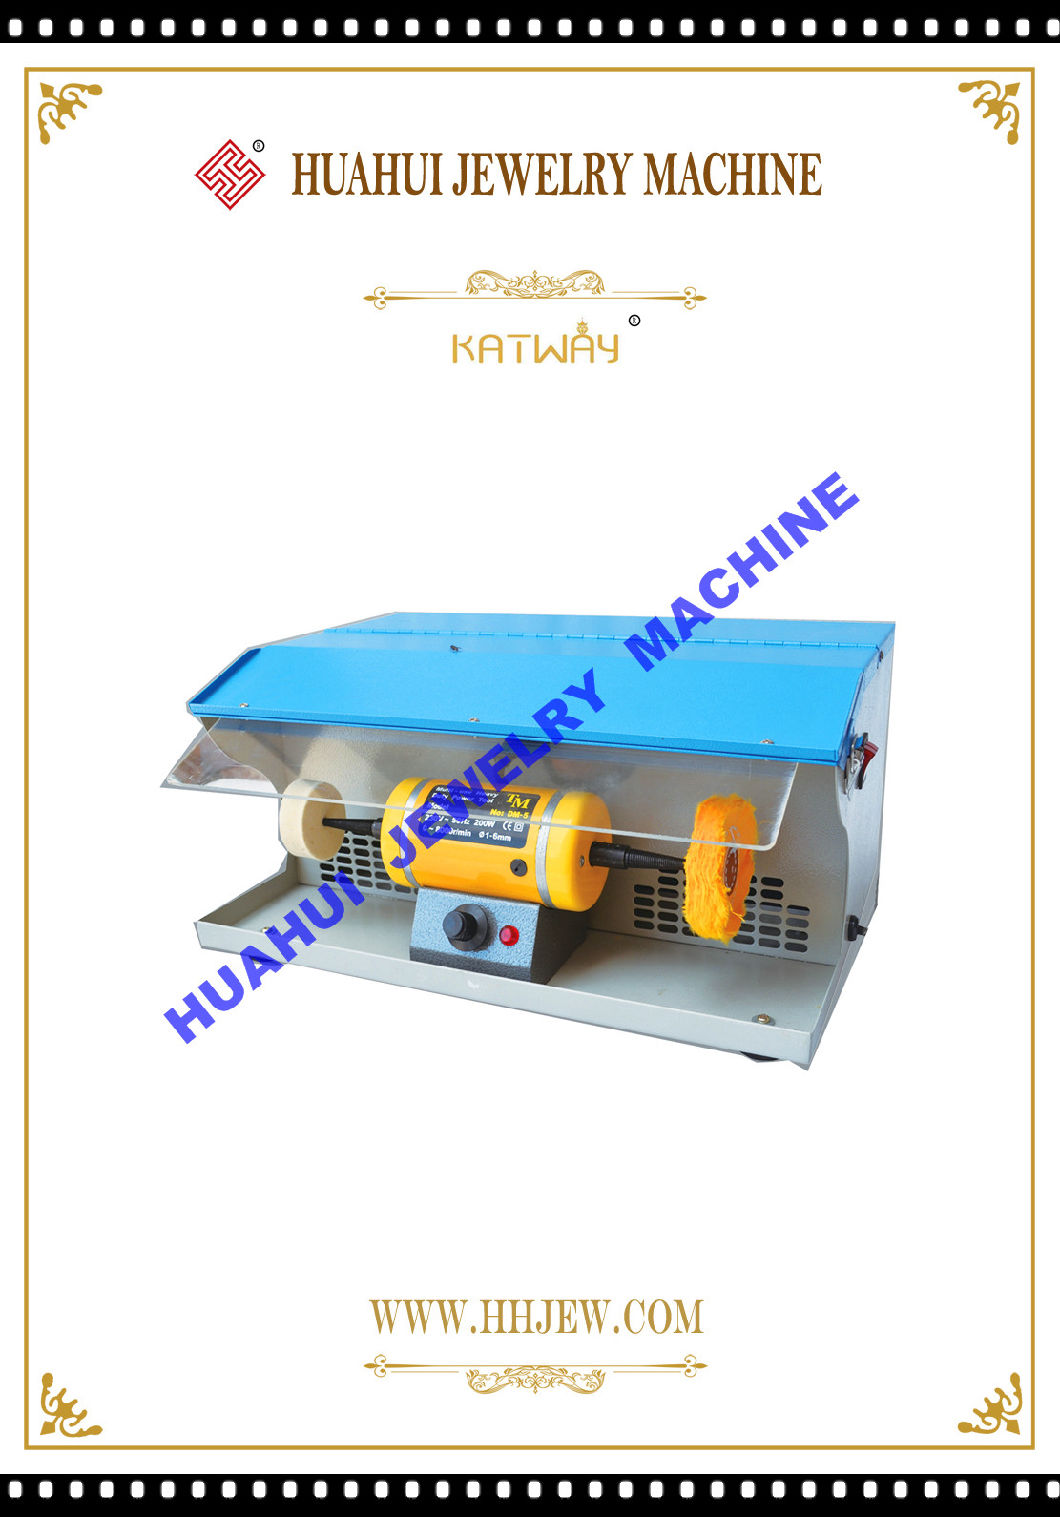 Bench Lathe Machine Electric Grinder, Bench Buffer Polisher Grinder Buffing Polishing Machine for Jade Jewelry, Huahui Jewelry Machine & Jewelry Making Tools